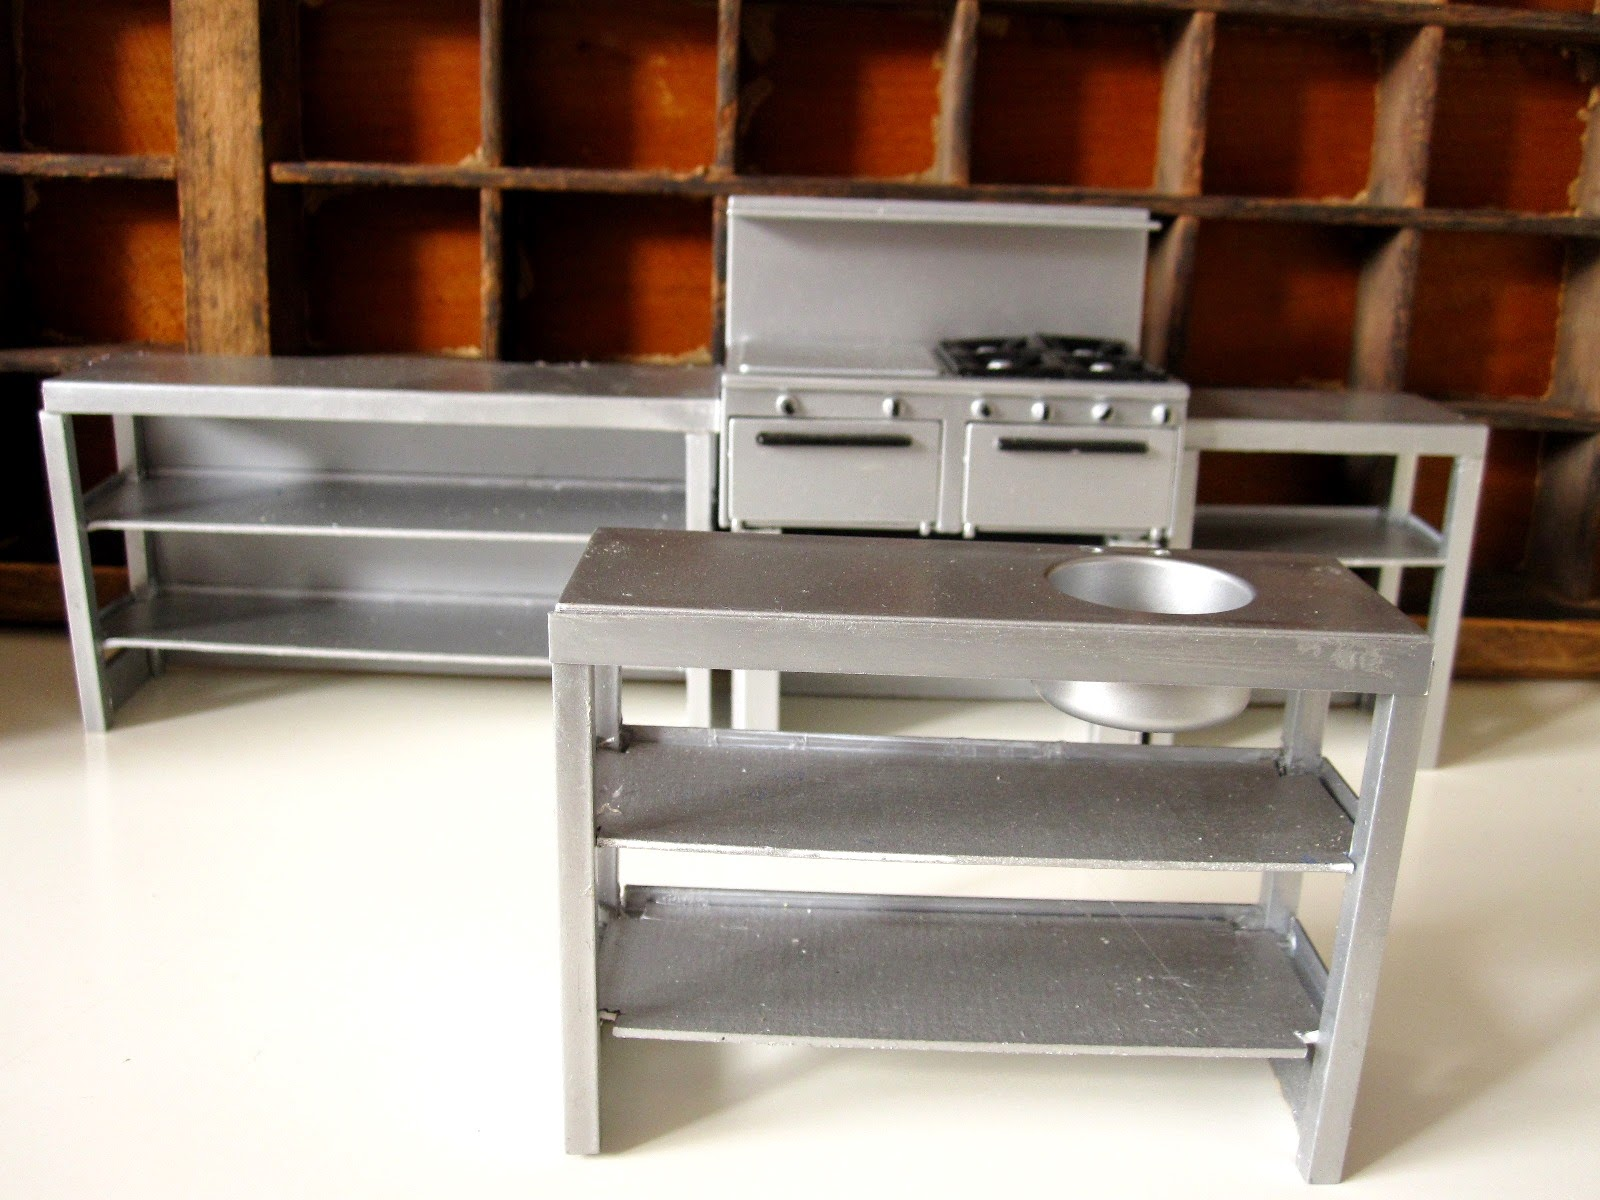 Modern dolls' house miniature steel kitchen units and shelves.